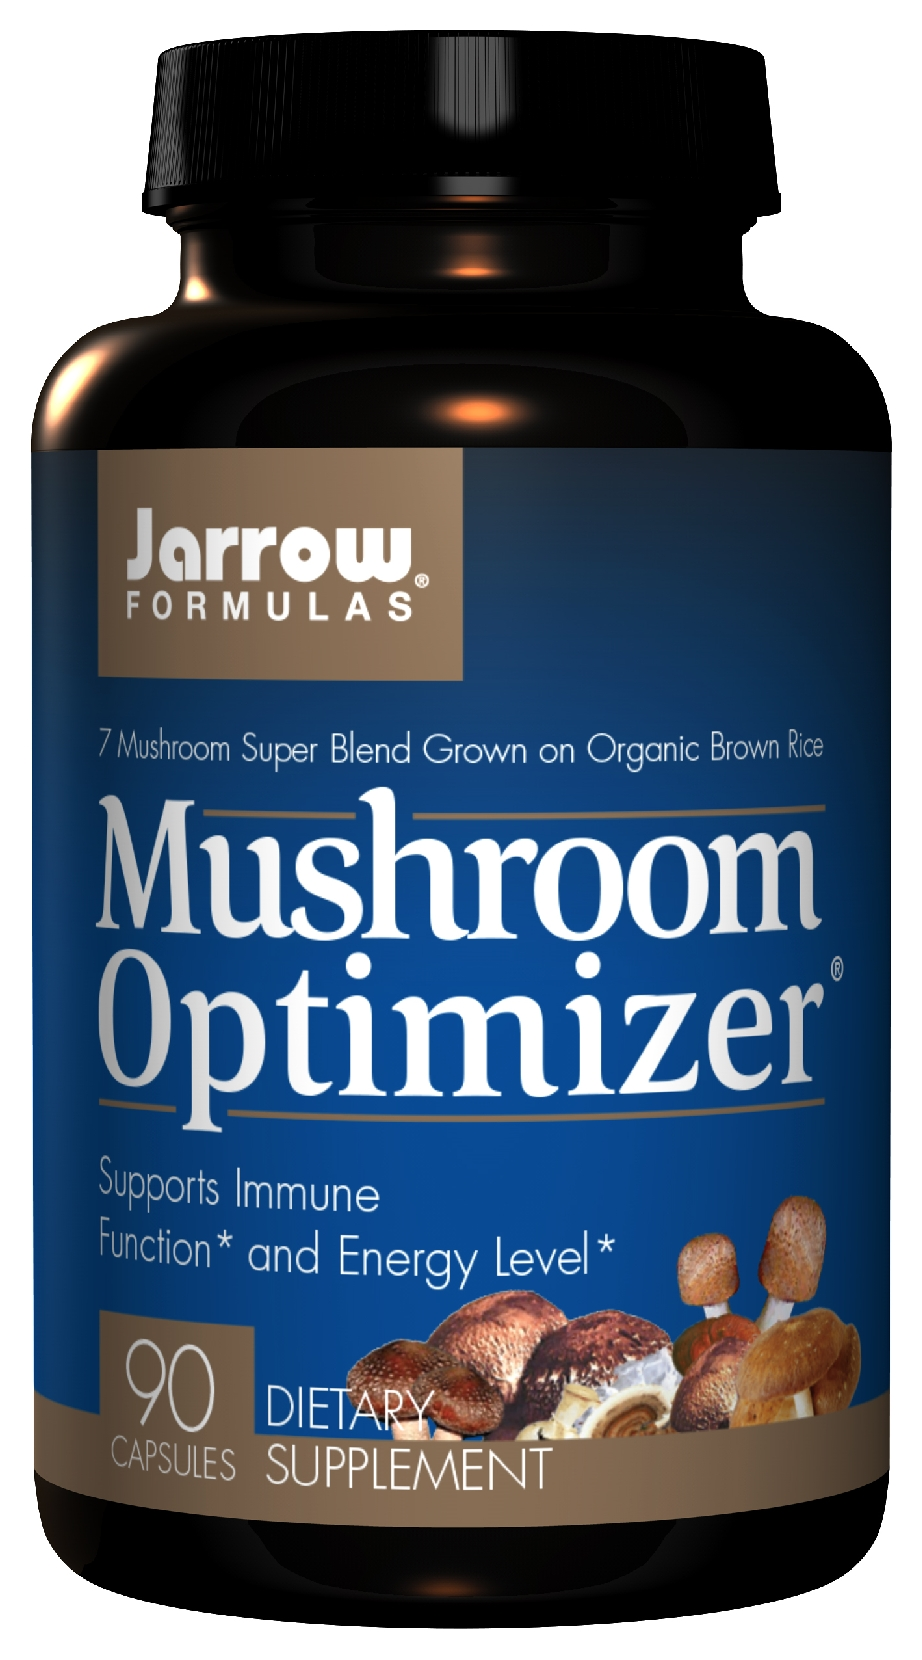 Mushroom Optimizer 90 caps by Jarrow Formulas